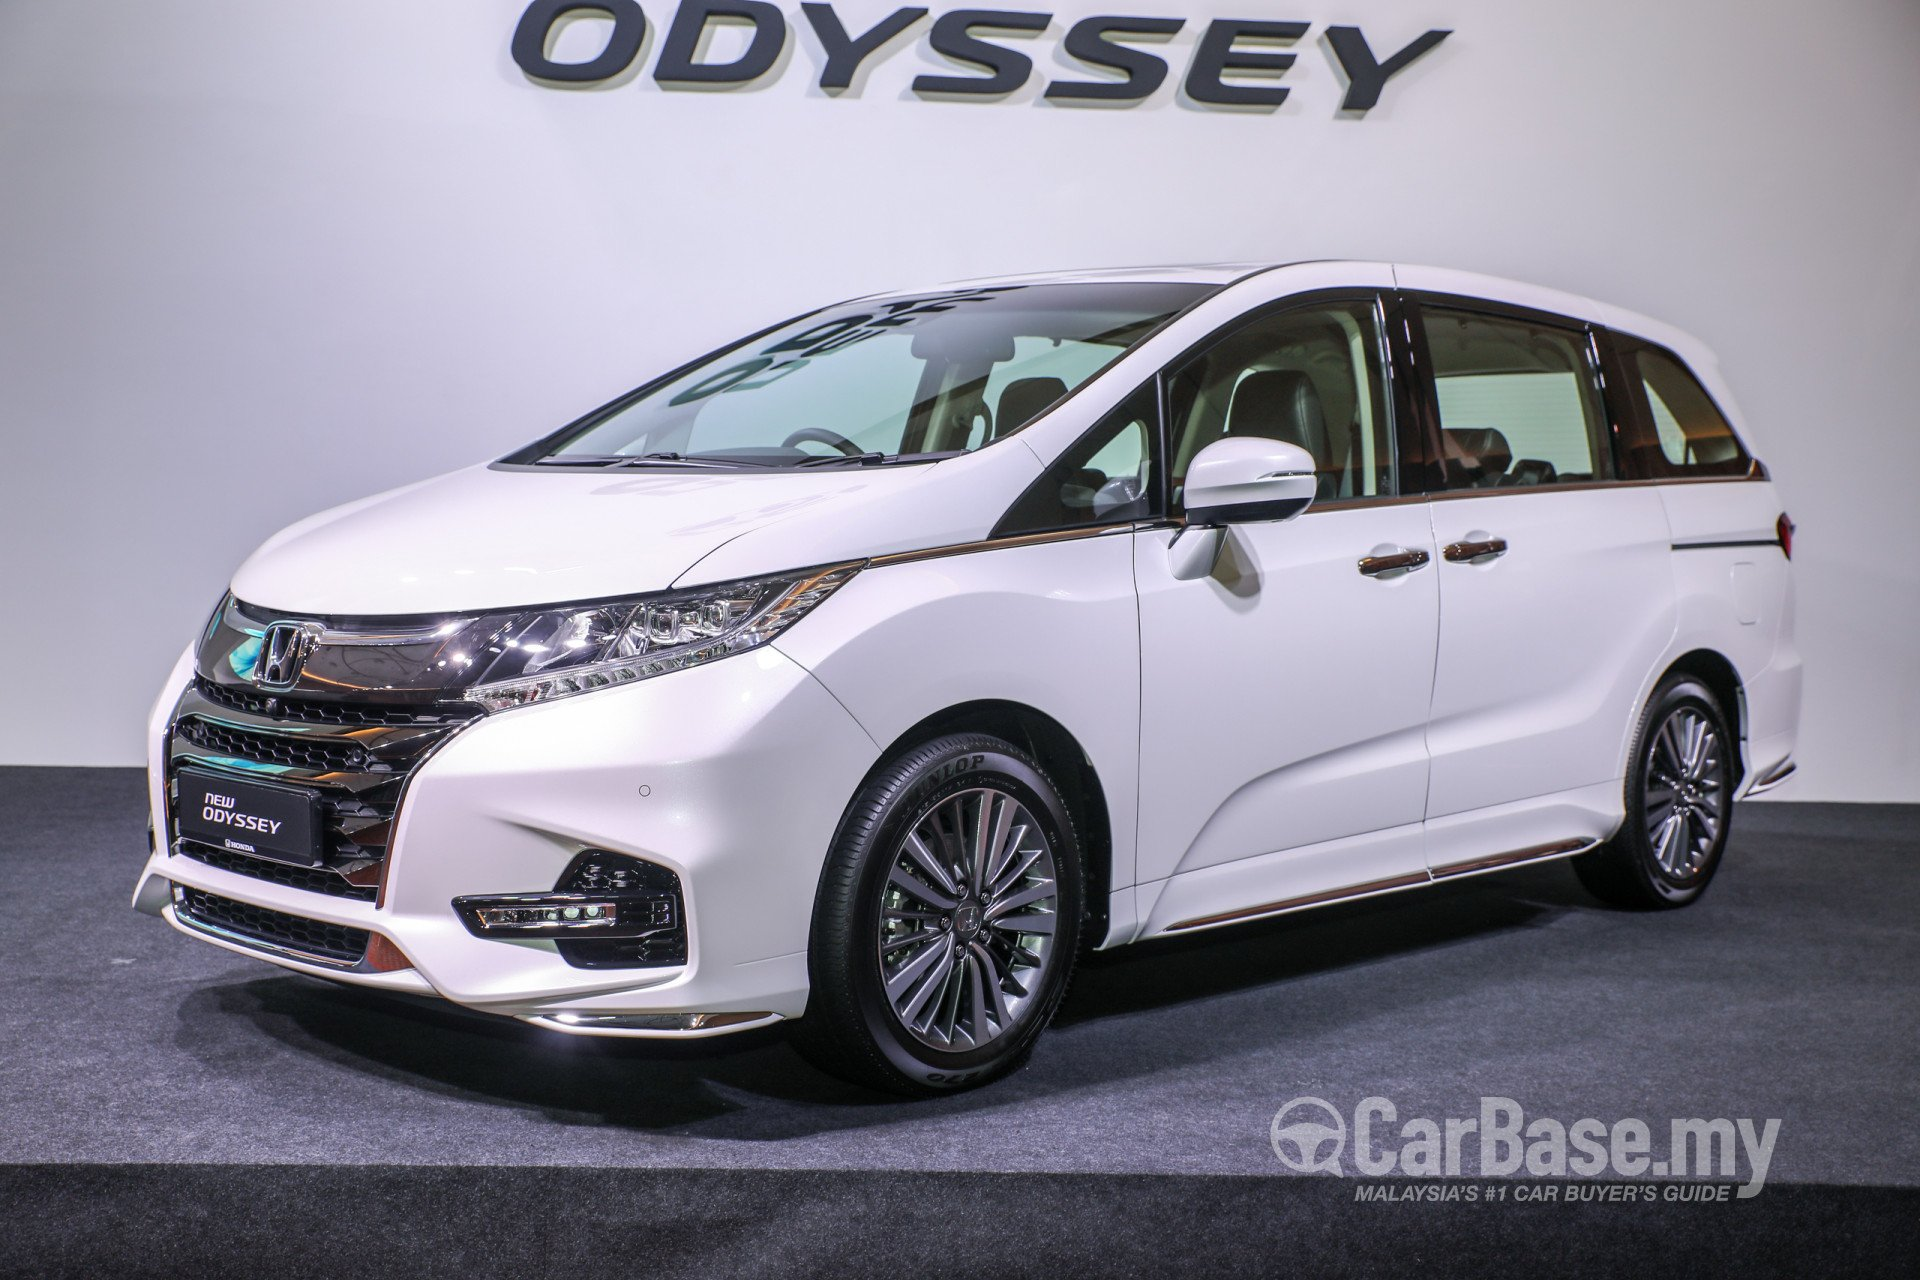 curbside white away honda larger right converted price odyssey sold fully view image drive new opt conversions